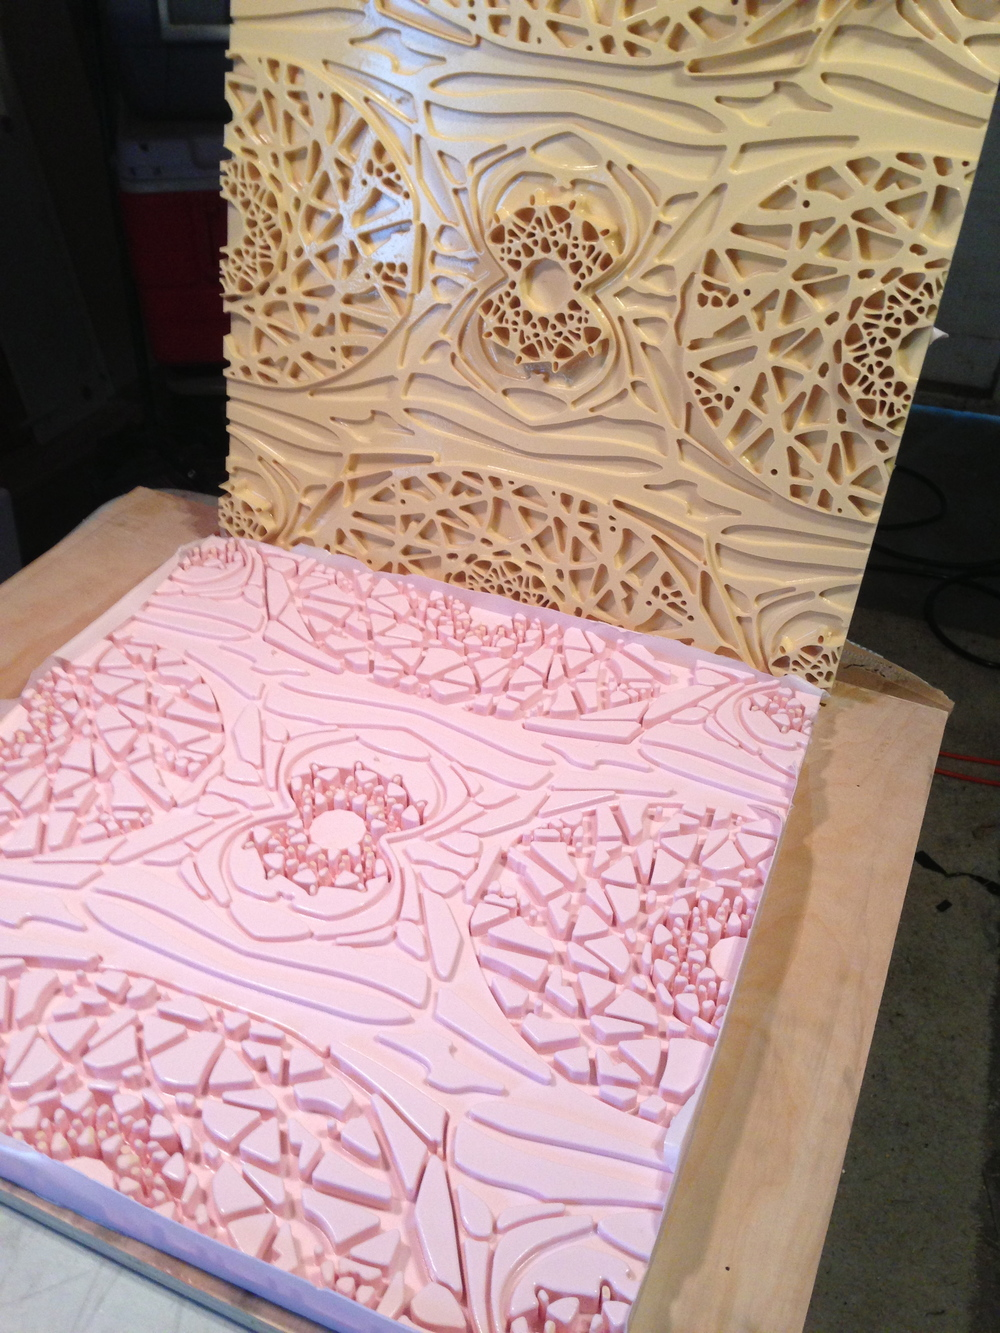 Foam and Rubber tile mold